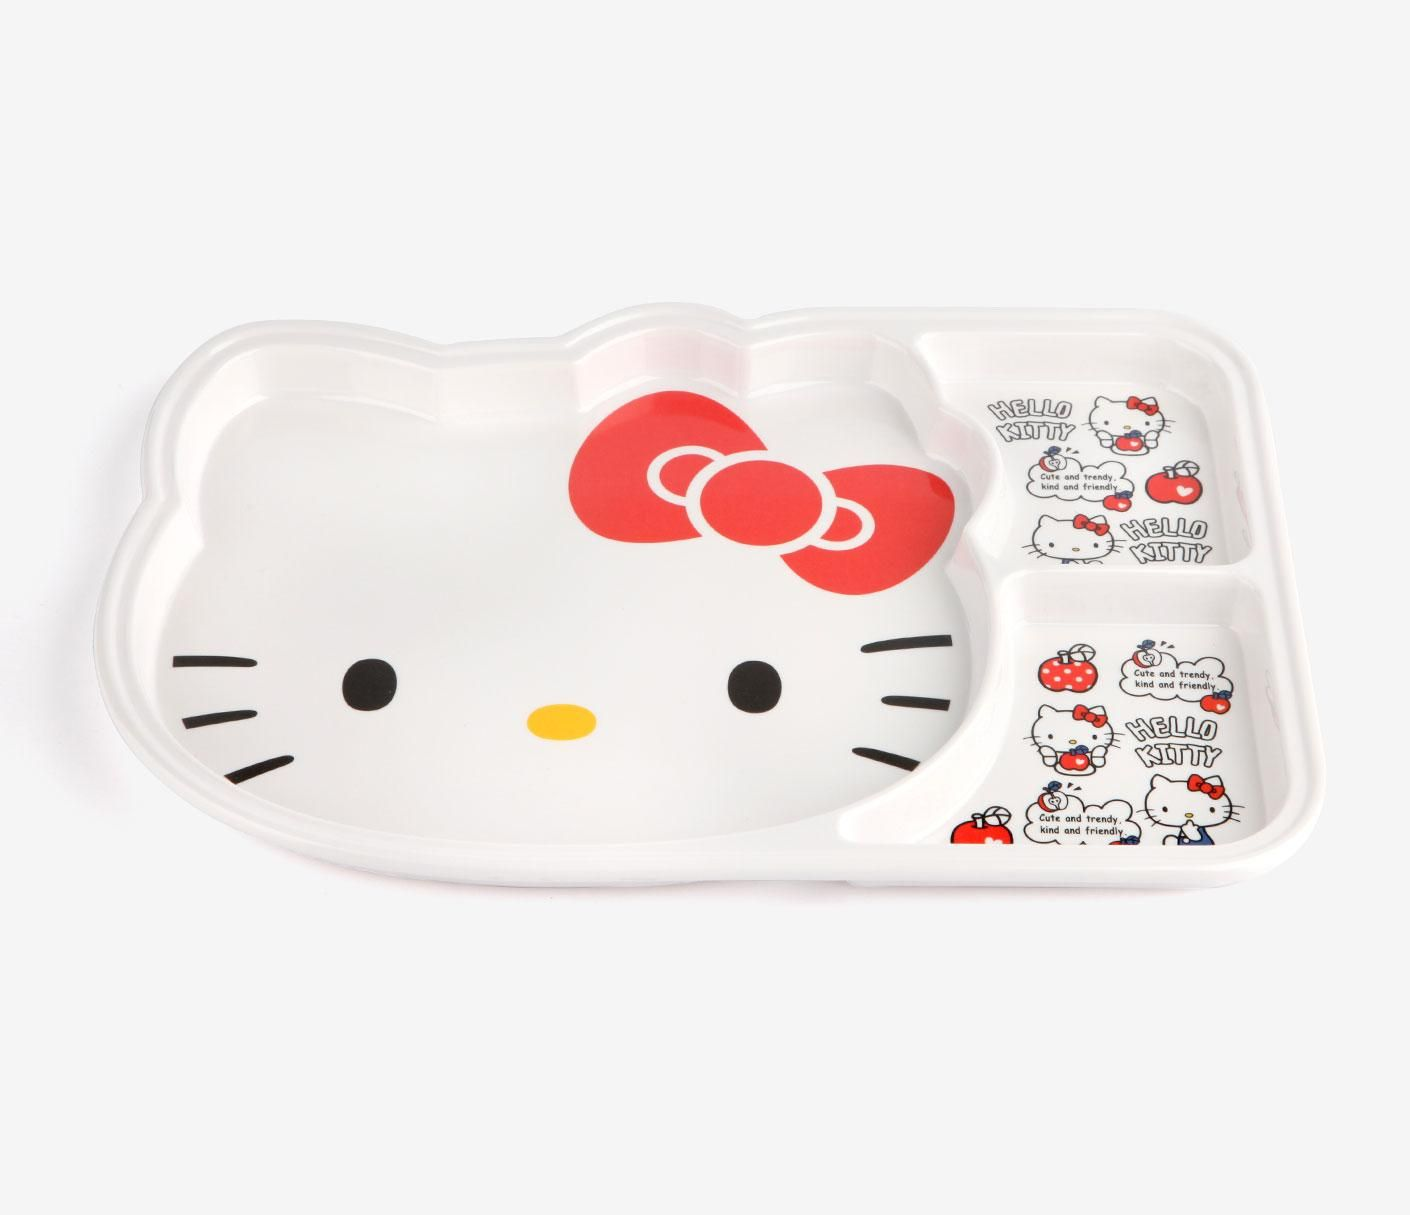 Hello Kitty Küchengeräte Cute Hellokitty Divided Plate For Every Meal Hello Kitty